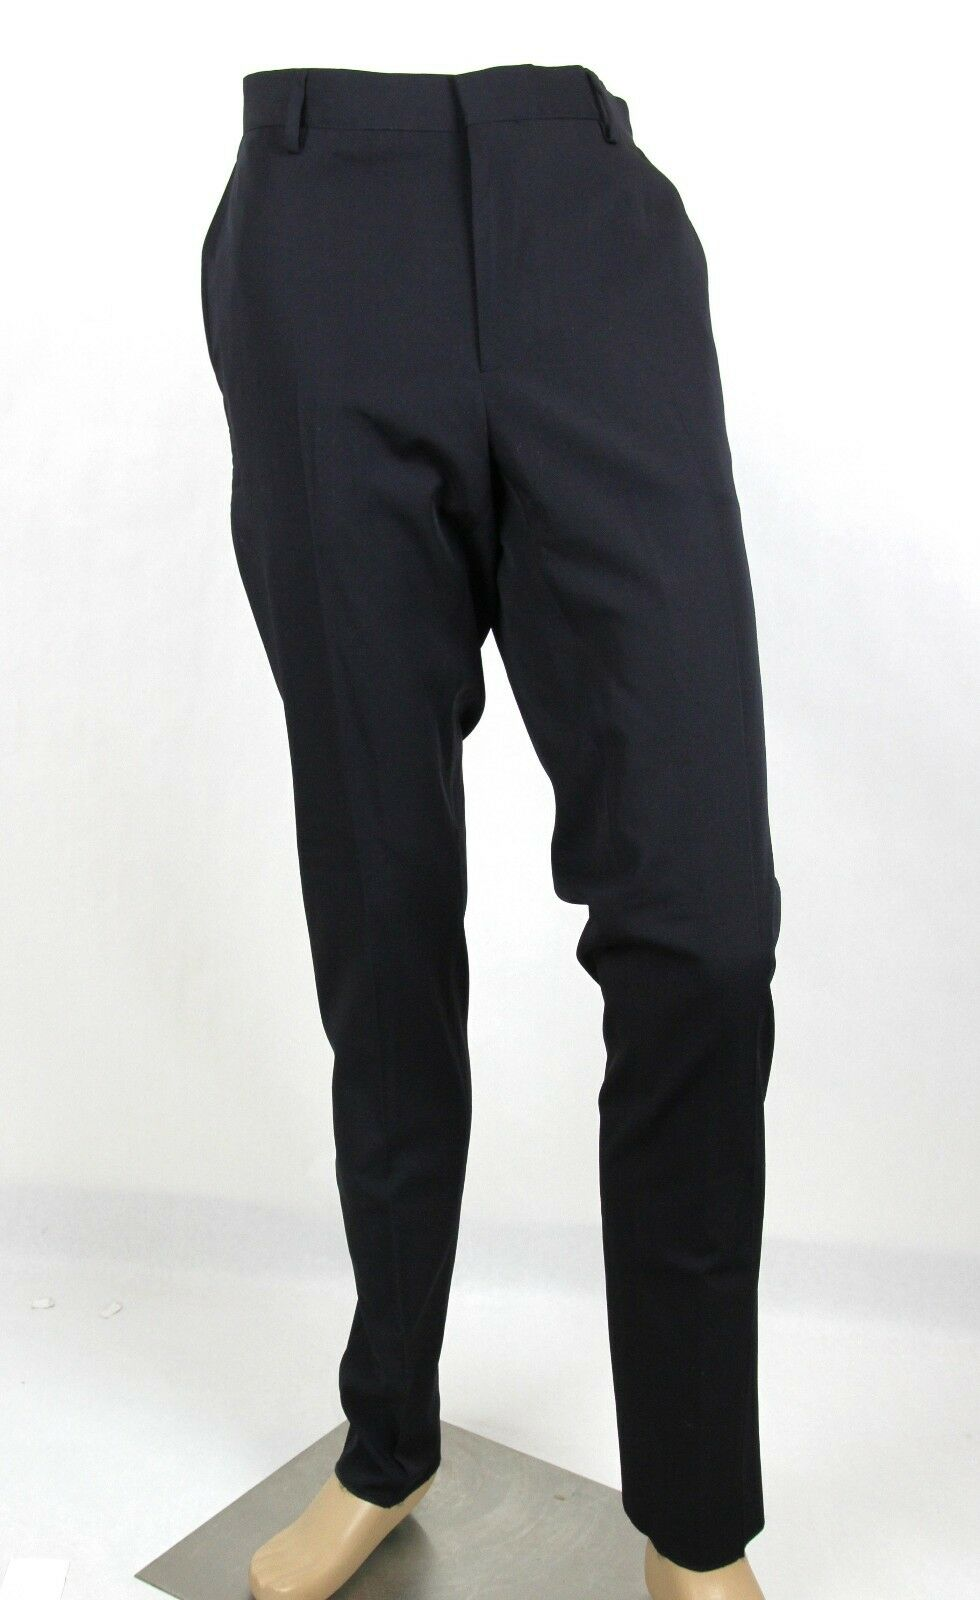 New Bottega Veneta Men's Wool Navy Dress Pants IT 52 US 36 308276 4014